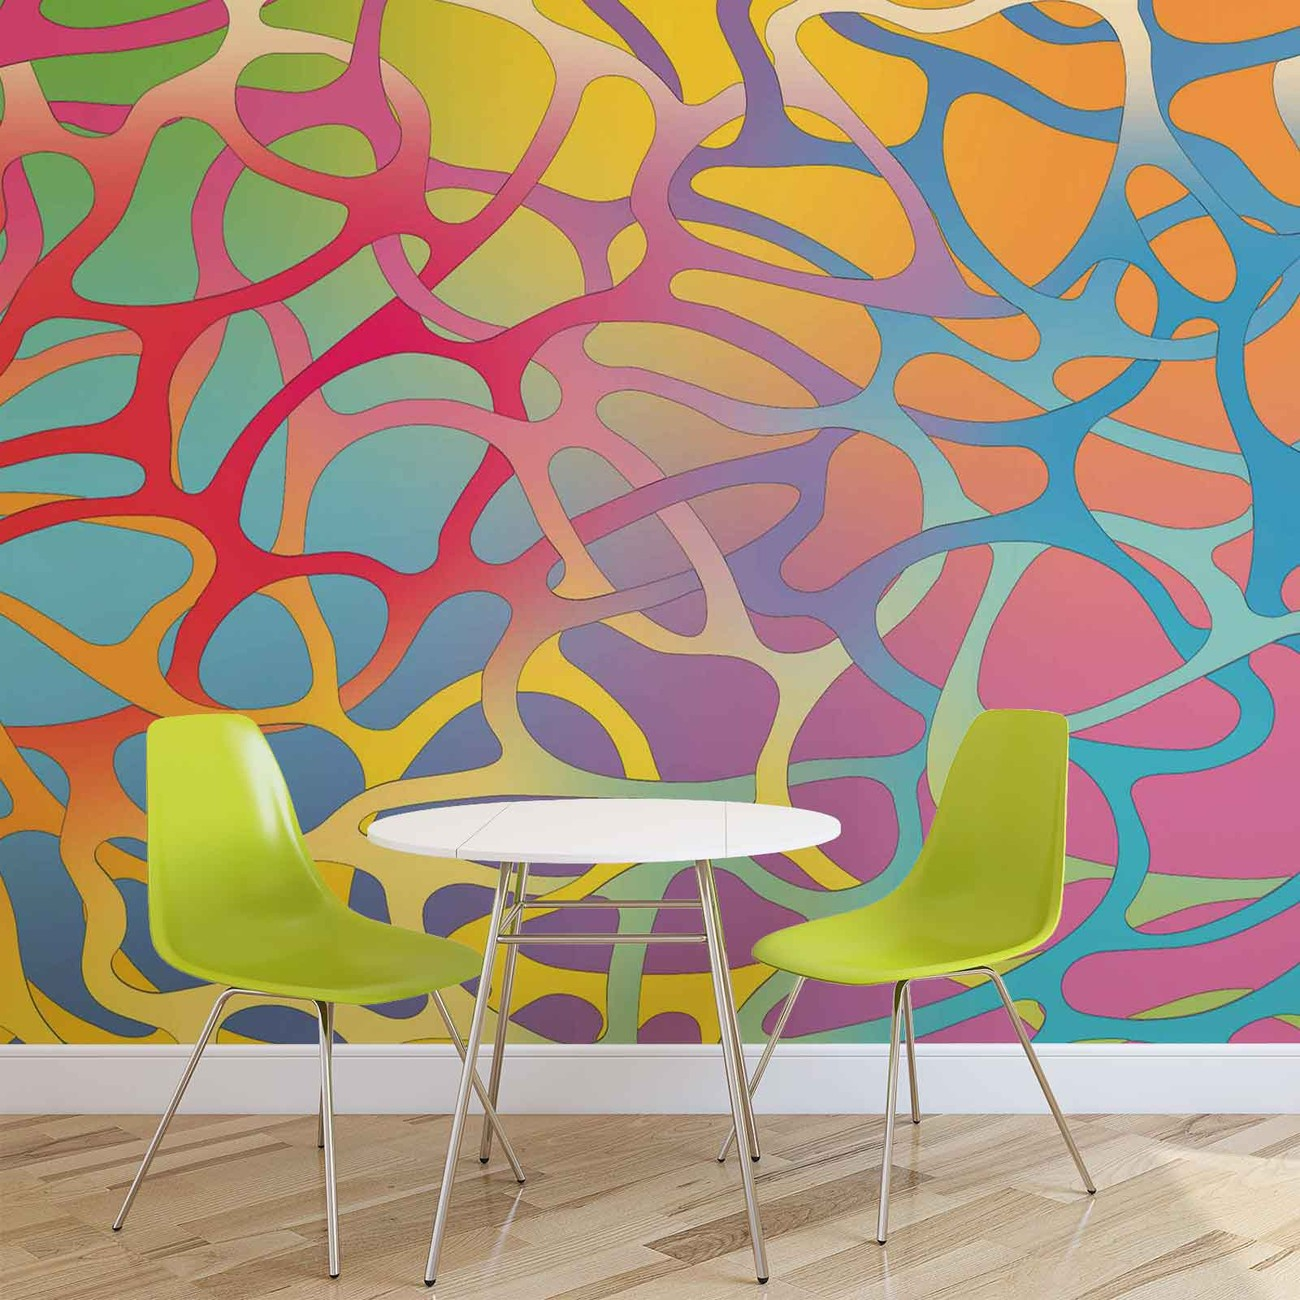 Abstract art wall paper mural buy at europosters for Buy mural paintings